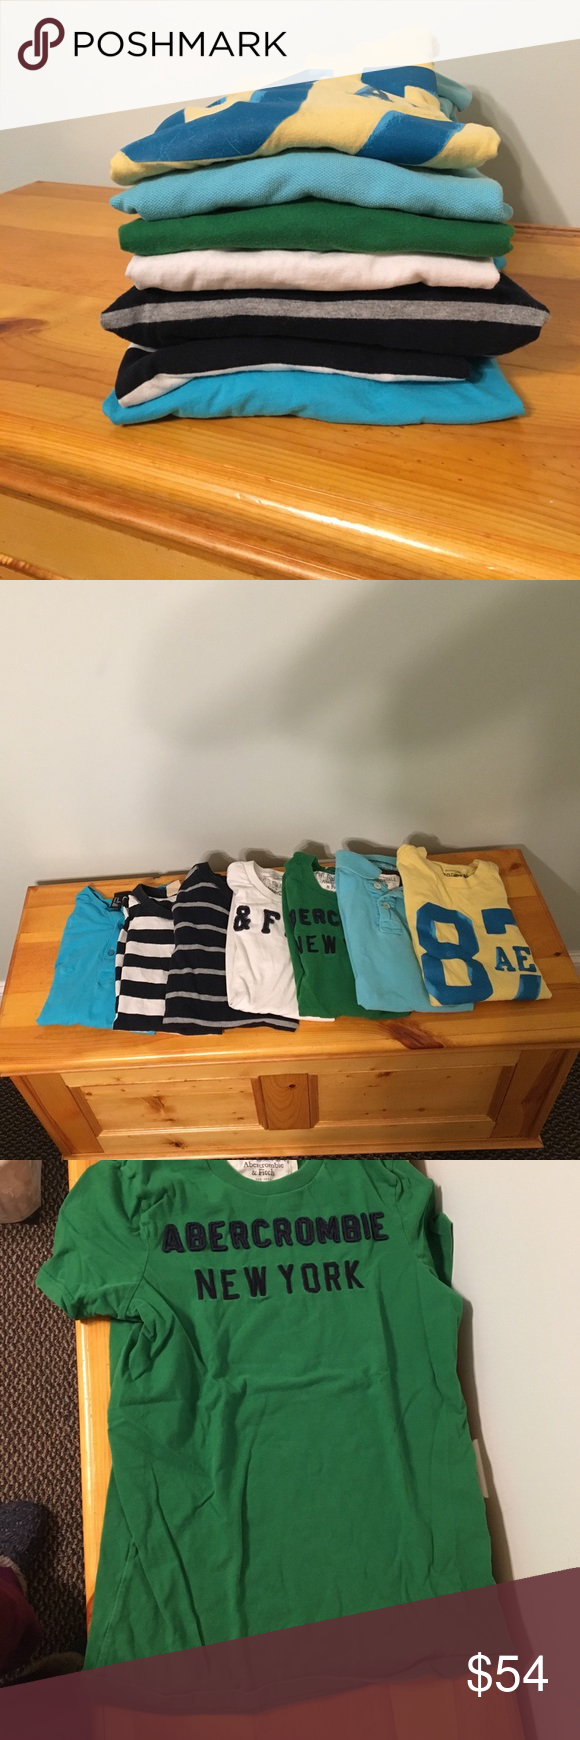 Abercrombie Bundle • 7 Tees This is an amazing deal for shirts in great preloved condition! Bundle includes Abercrombie, Hollister, H&M & Aeropostale. All tees are short sleeve, besides the solid bright blue and the navy striped gray. All are sizes XS or SMALL in adults or sizes XL in Kids. Perfect short & long sleeve tees for ur teen! Colors: blue, yellow, green, white, white Abercrombie & Fitch Shirts & Tops Tees - Short Sleeve